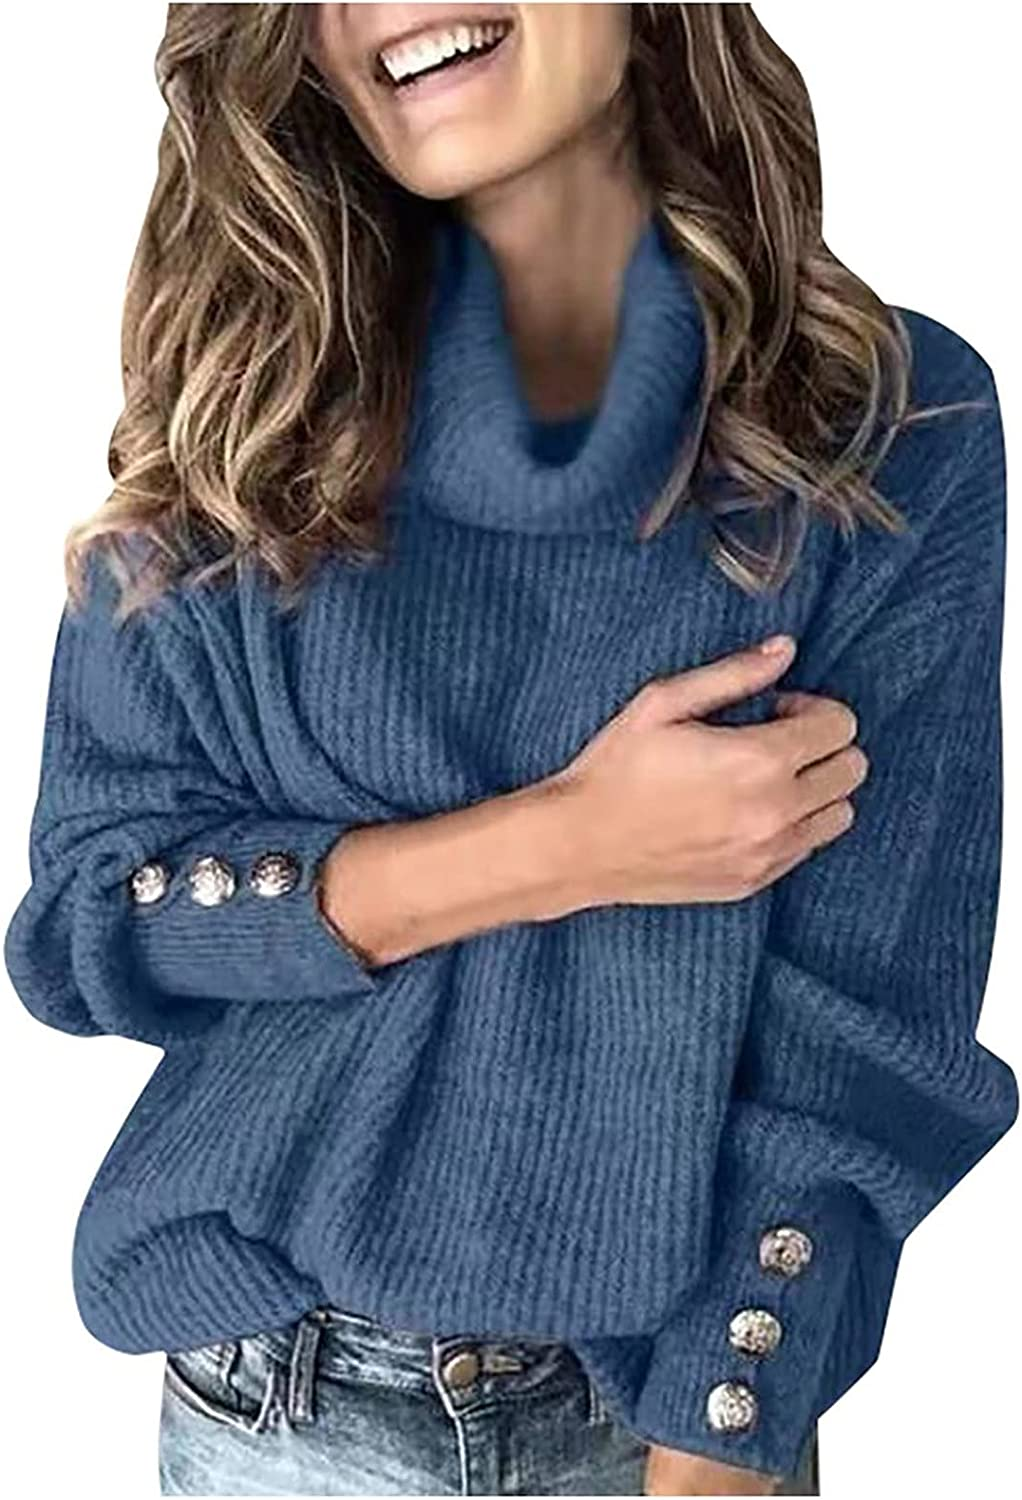 Sweaters for Women Turtleneck Knitted Jumper Sweater Long Sleeve Button Elegant Casual Tops Daily Casual Soft Blouse